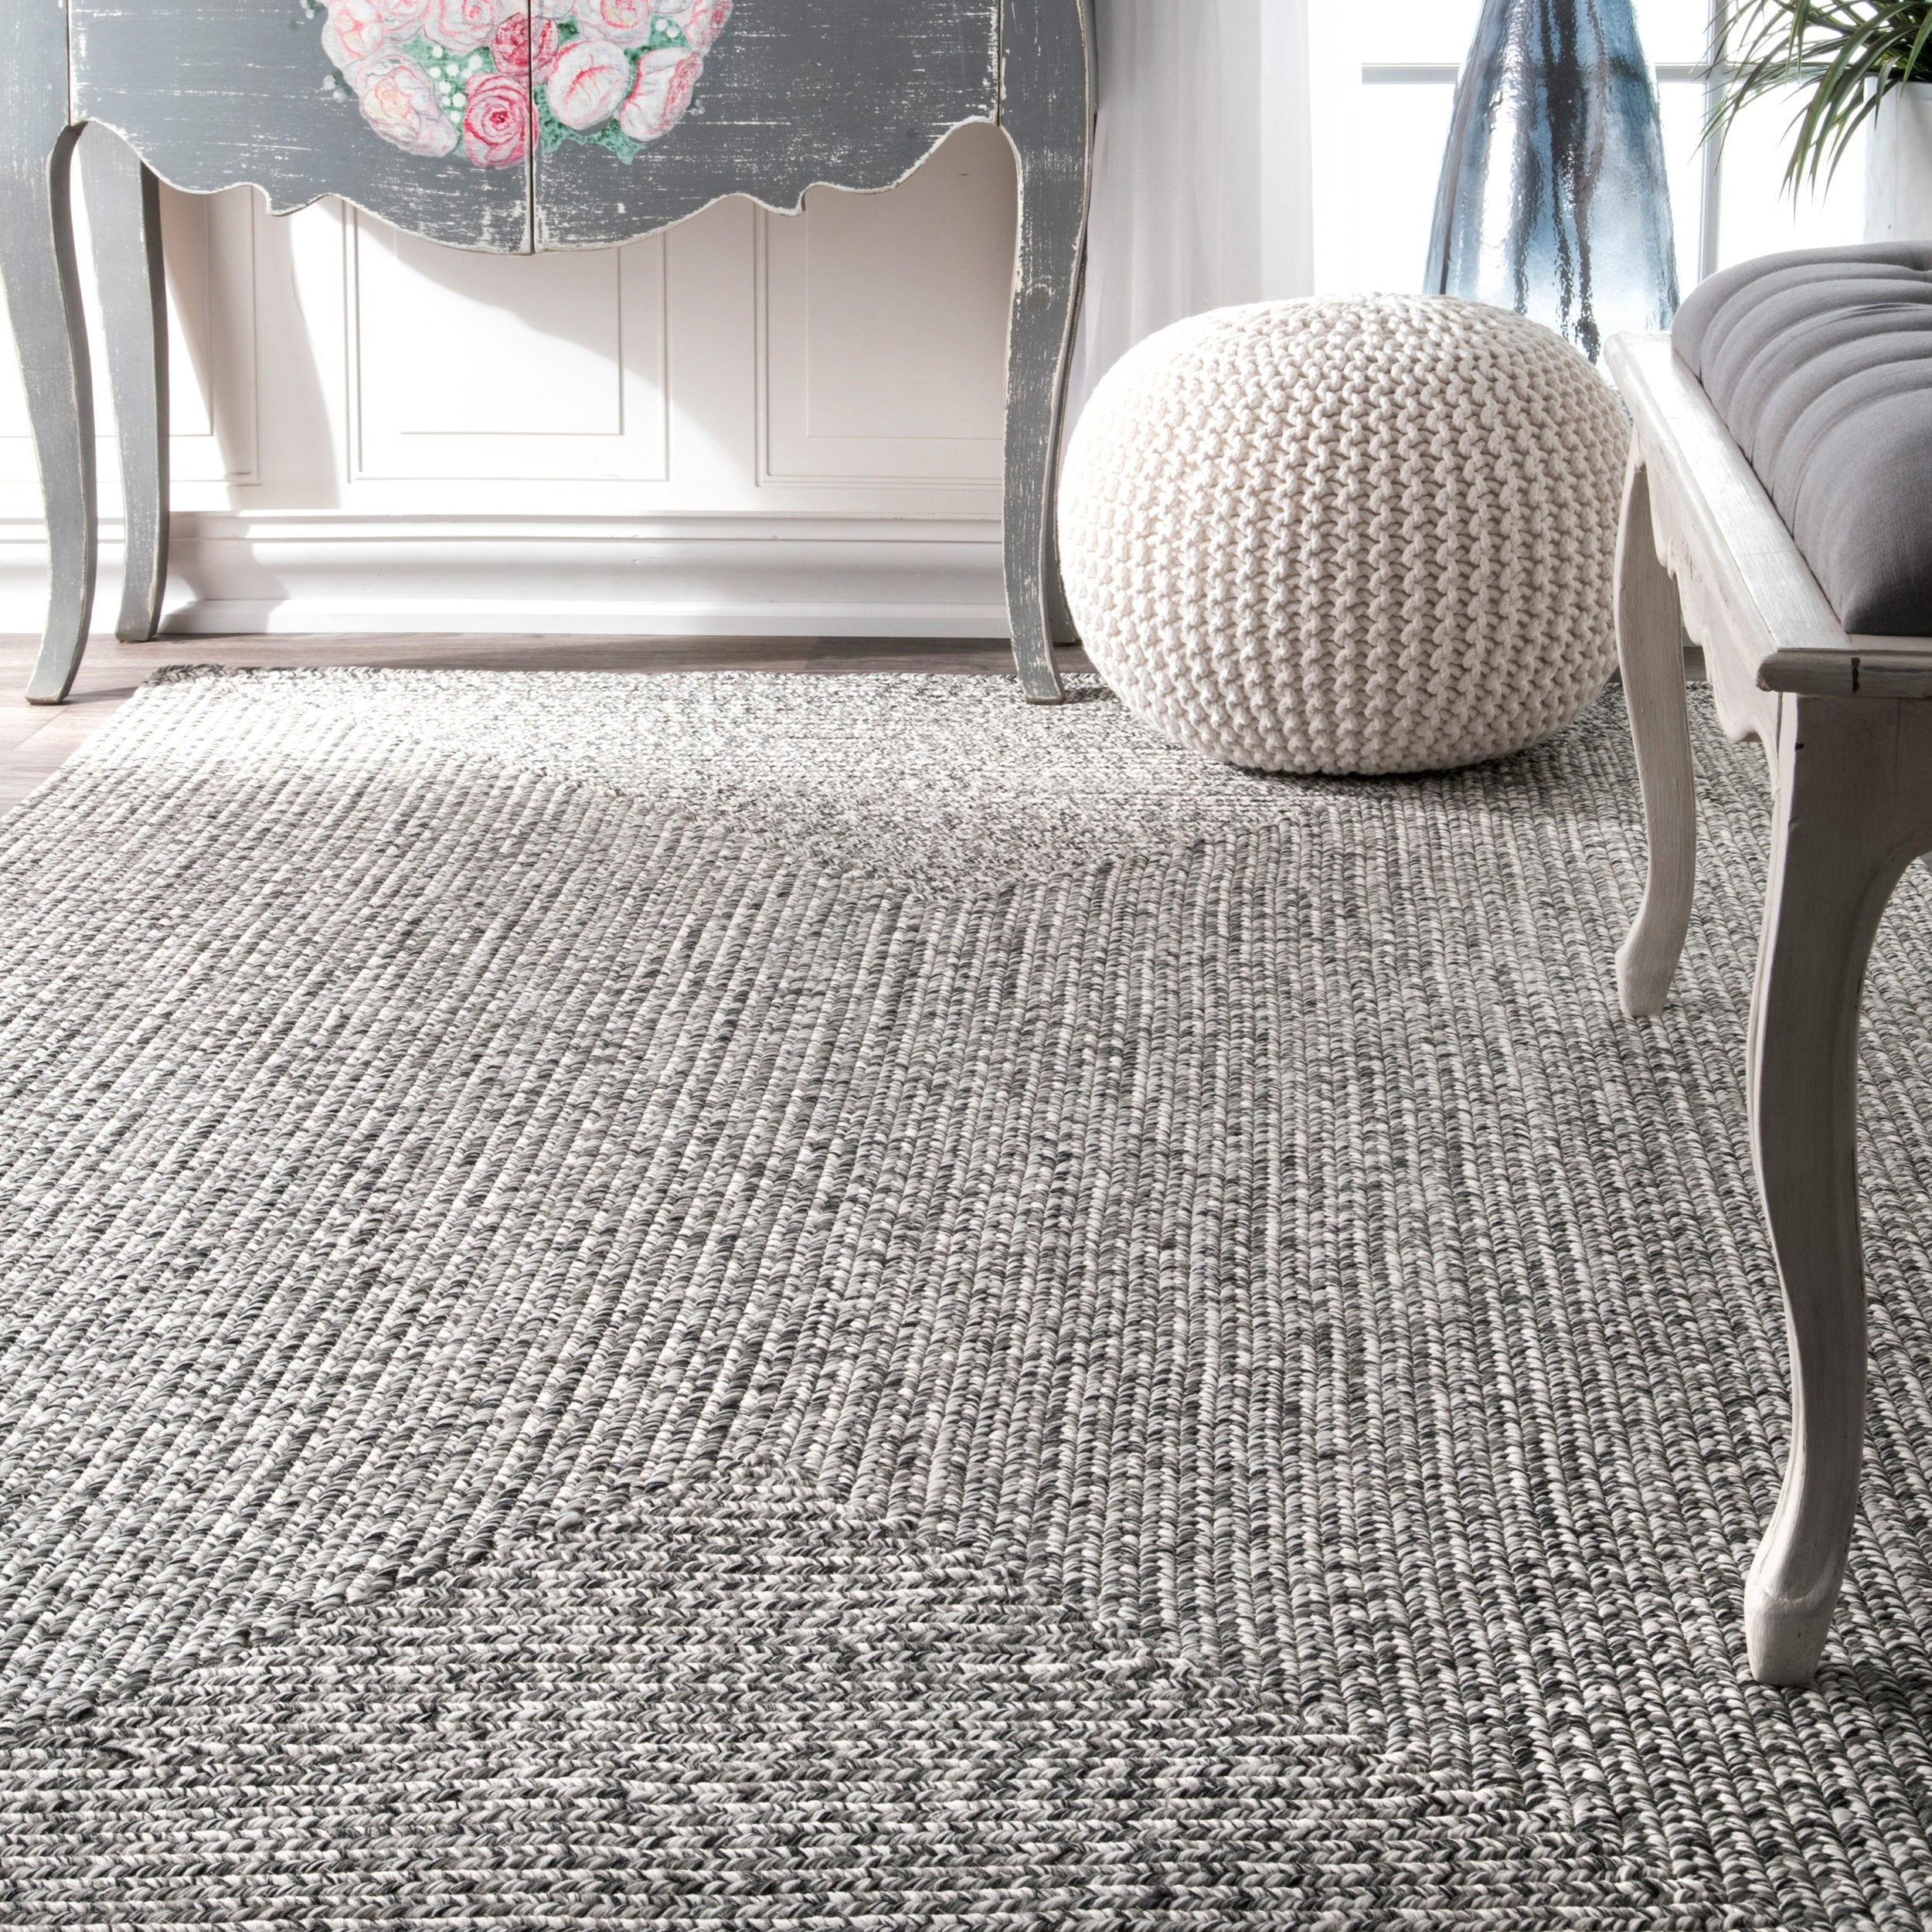 nuLoom Grey Indoor/ Outdoor Braided Area Rug (4' x 6') - Free Shipping  Today - Overstock.com - 18357568